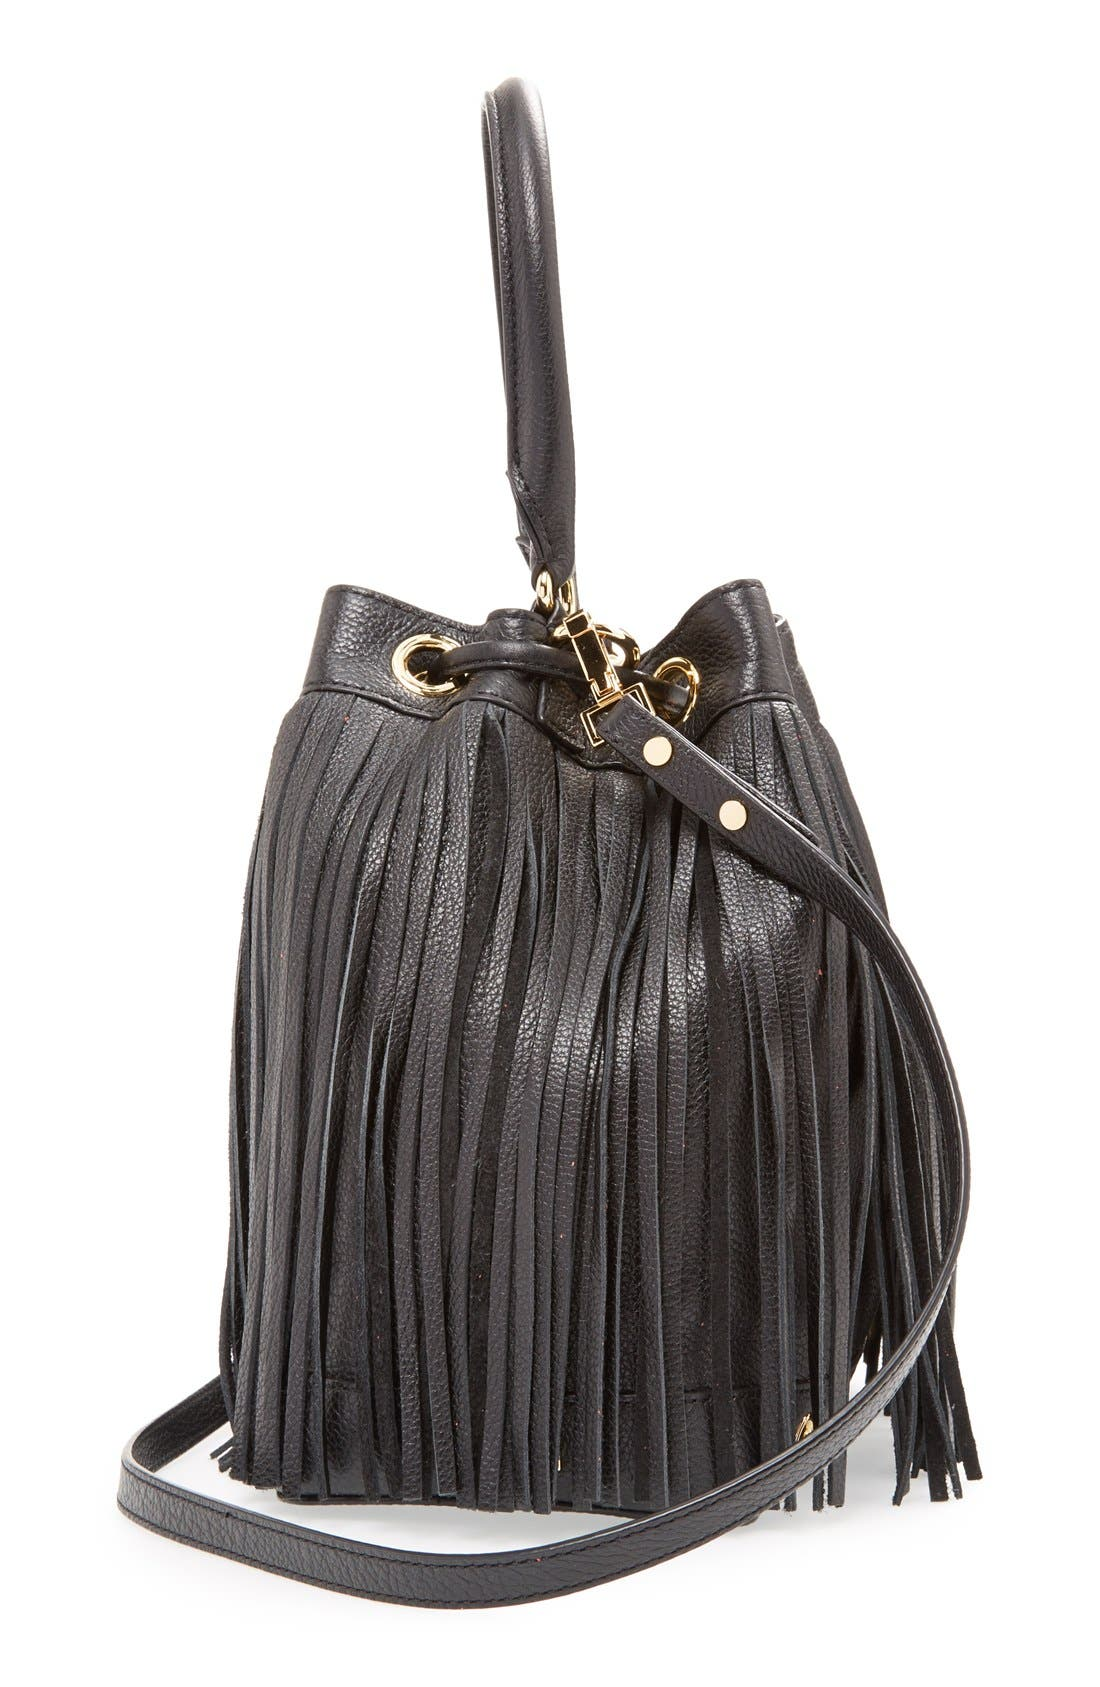 MILLY, 'Essex' Fringed Leather Bucket Bag, Alternate thumbnail 3, color, 001